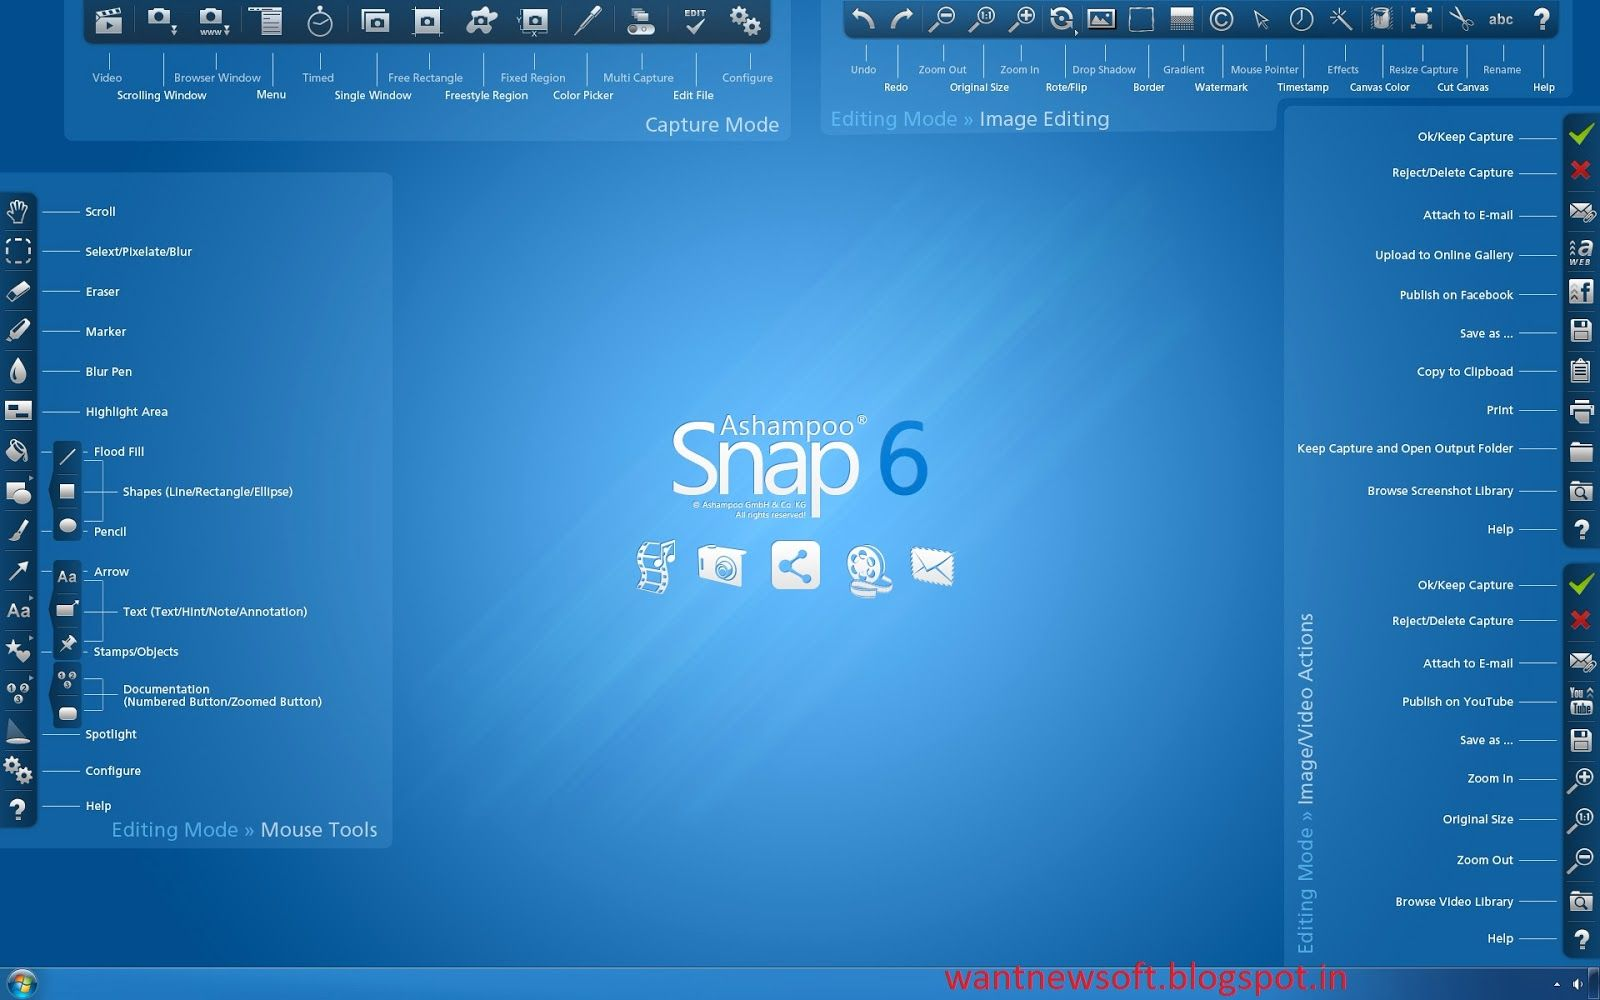 Ashampoo Snap 6 Free Downlload Full Version With License